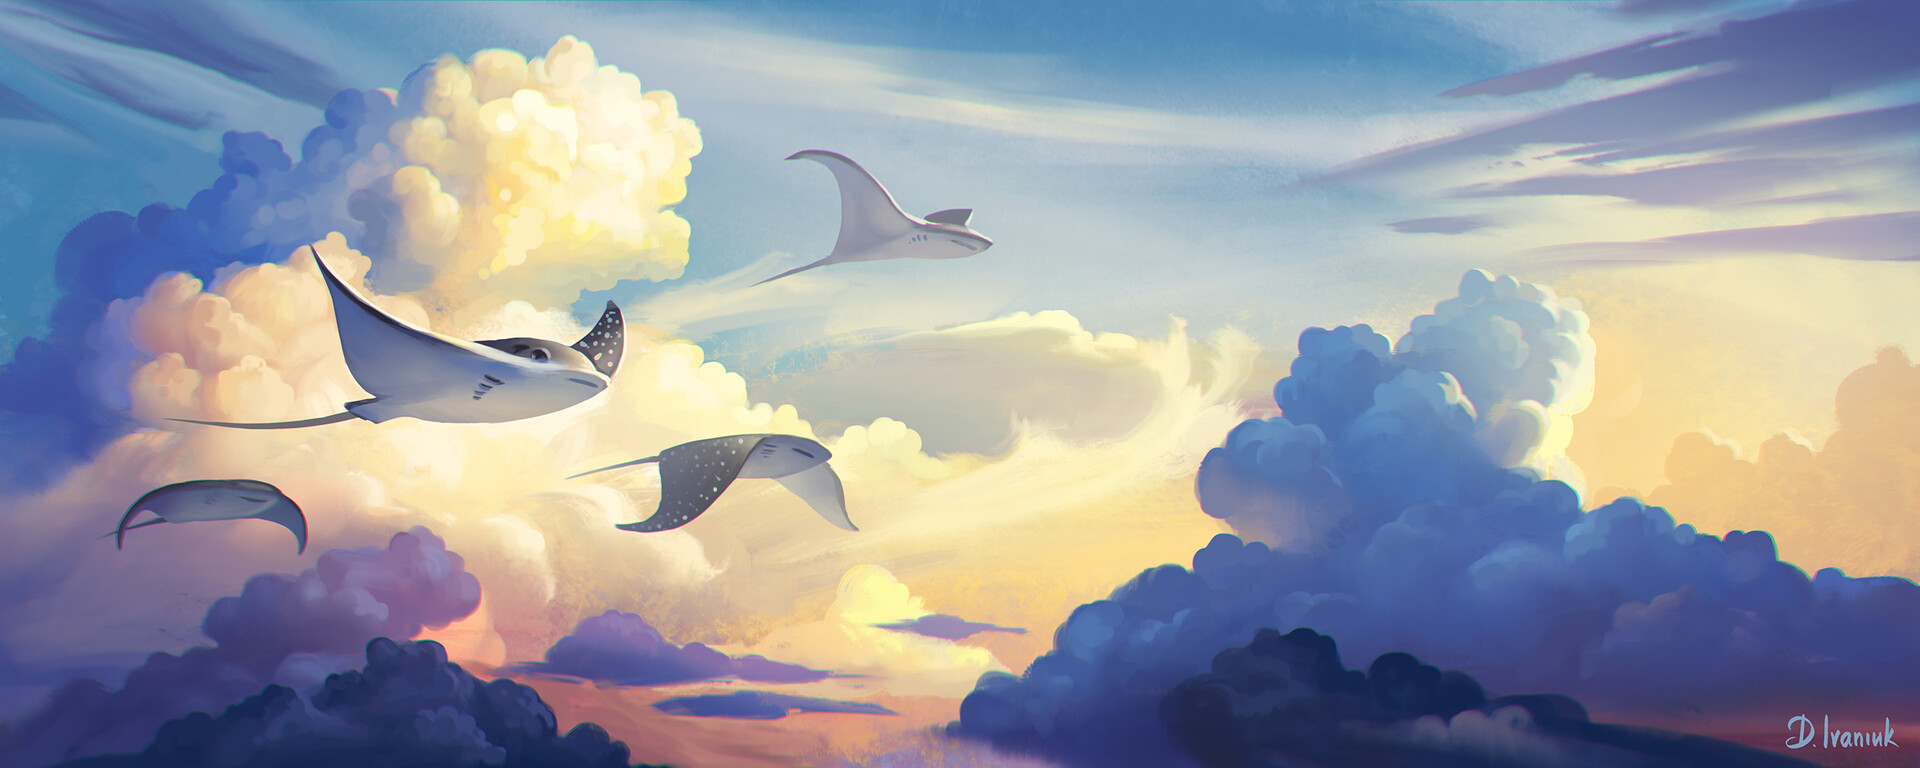 Four stingrays flying among dreamy clouds.